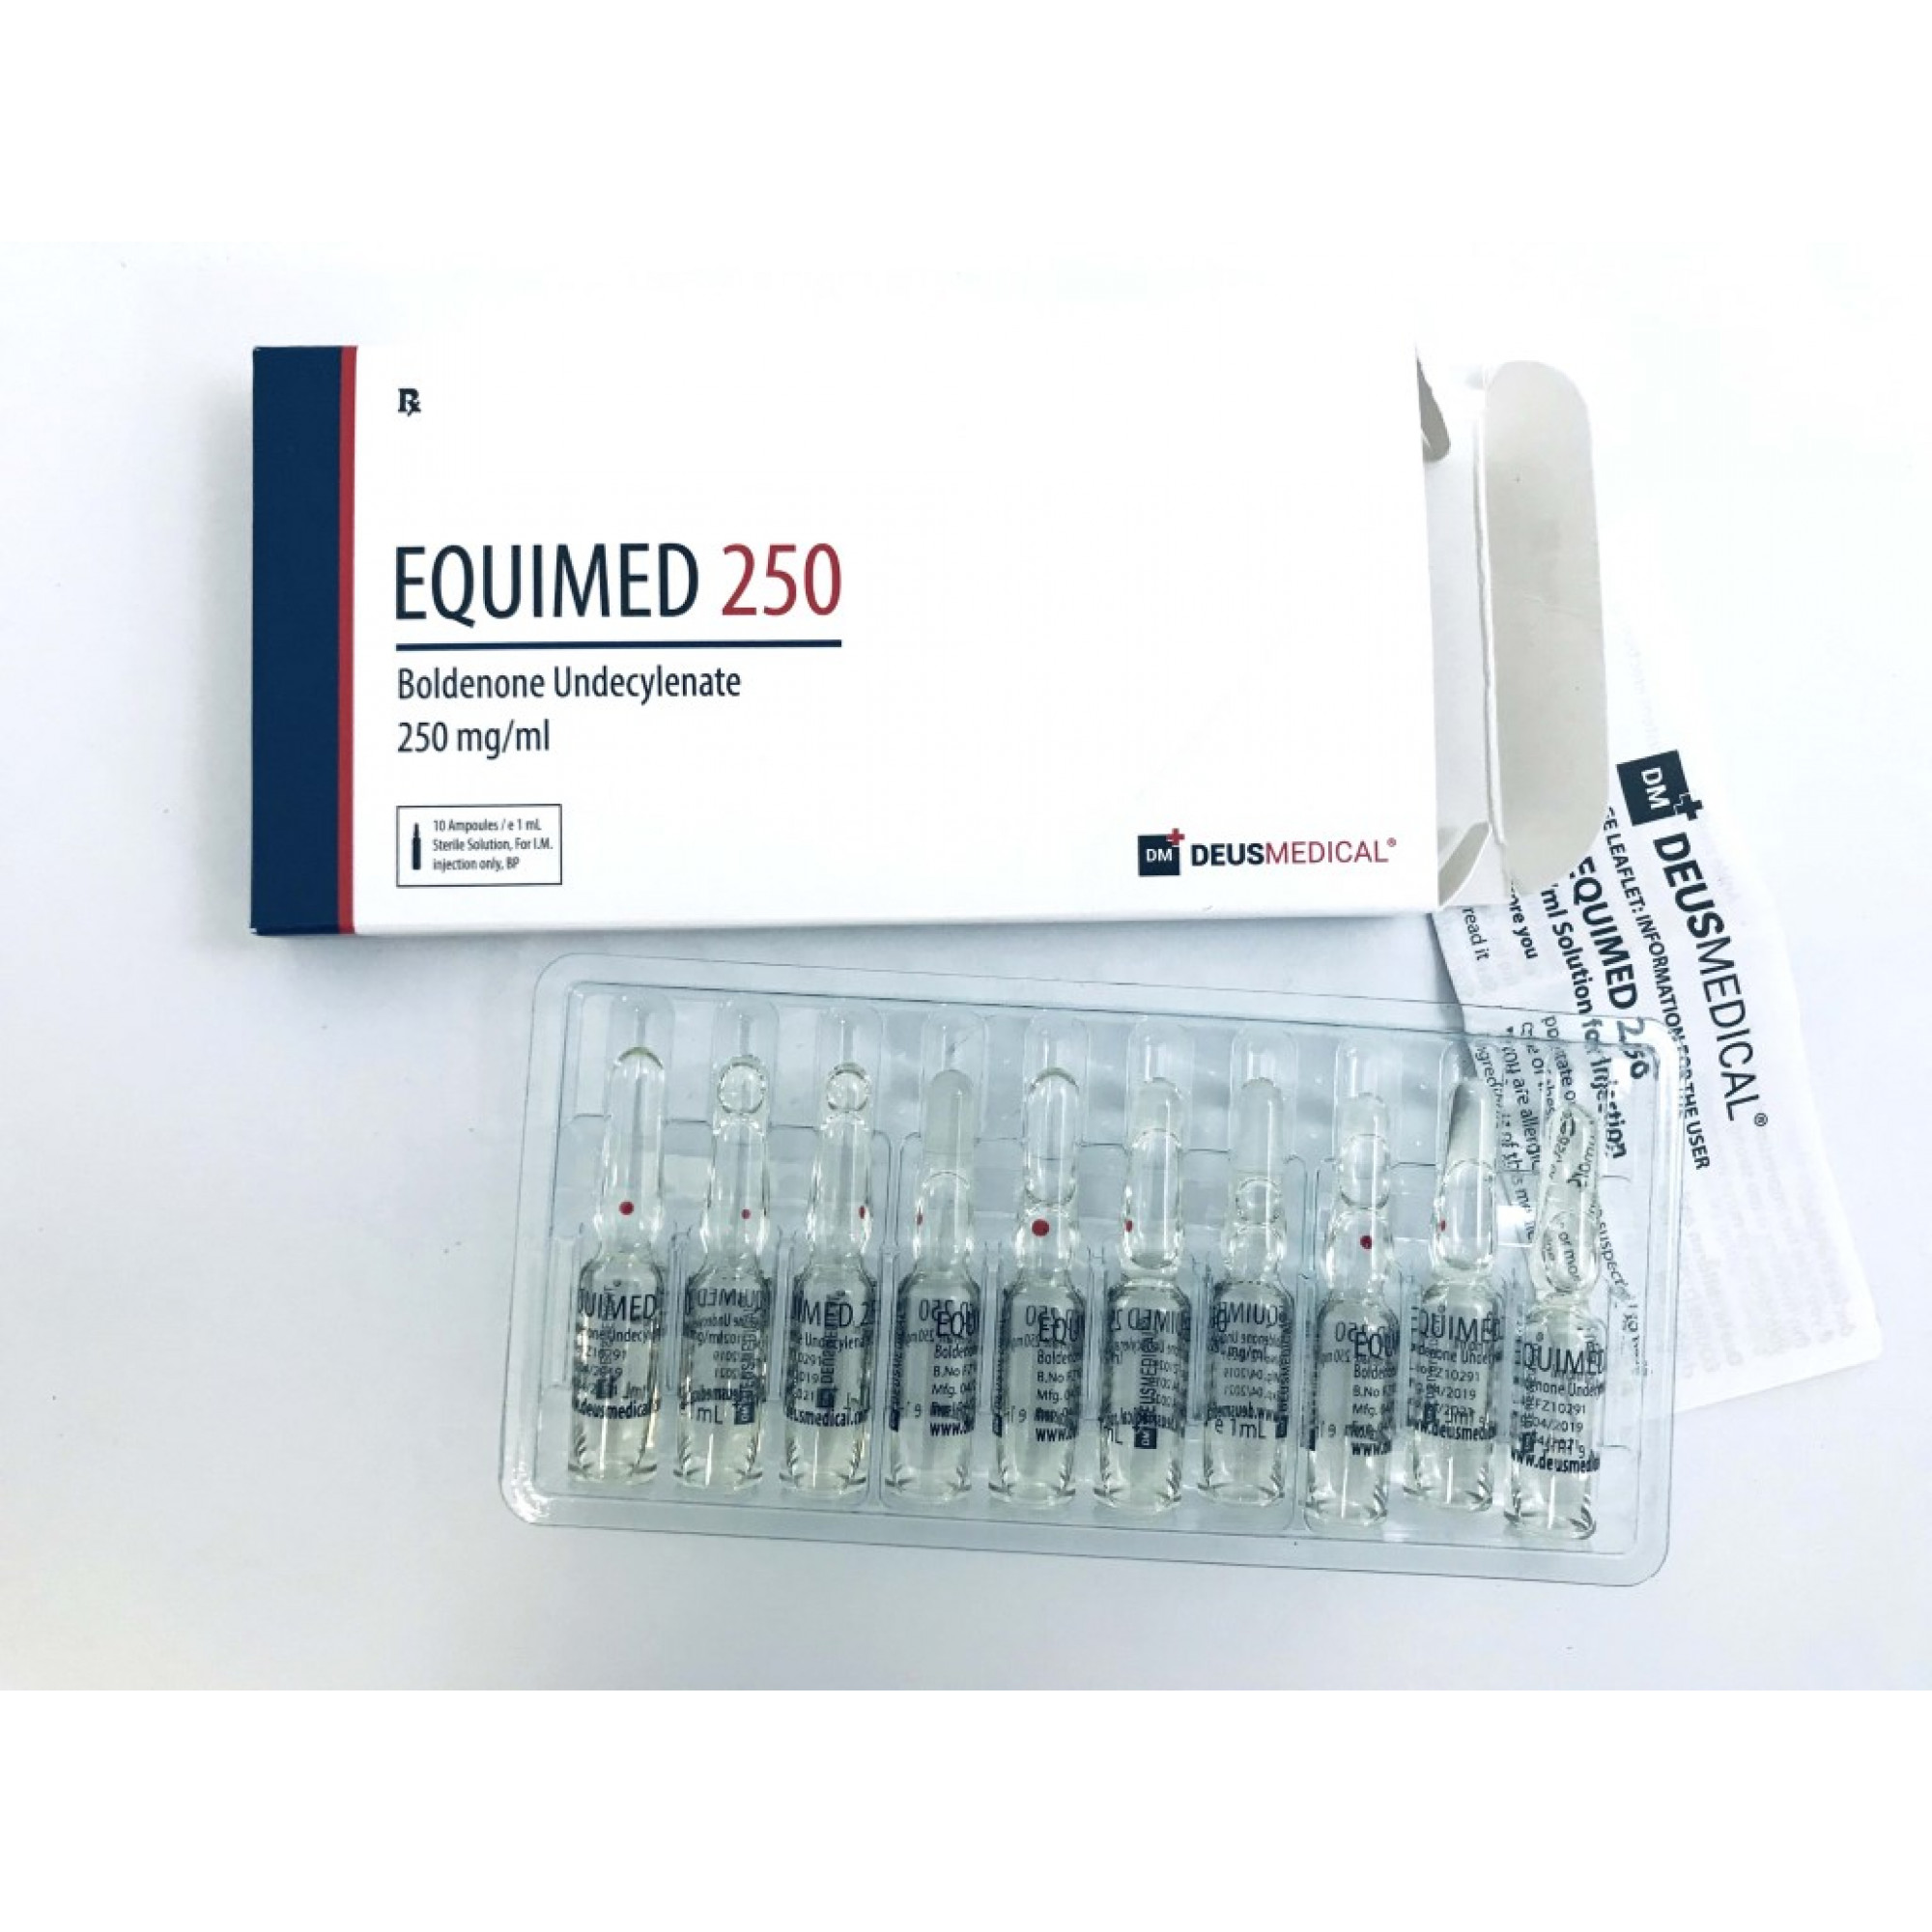 EQUIMED 250 (Boldenone undecylenate), DEUS MEDICAL, BUY STEROIDS ONLINE - www.DEUSPOWER.com